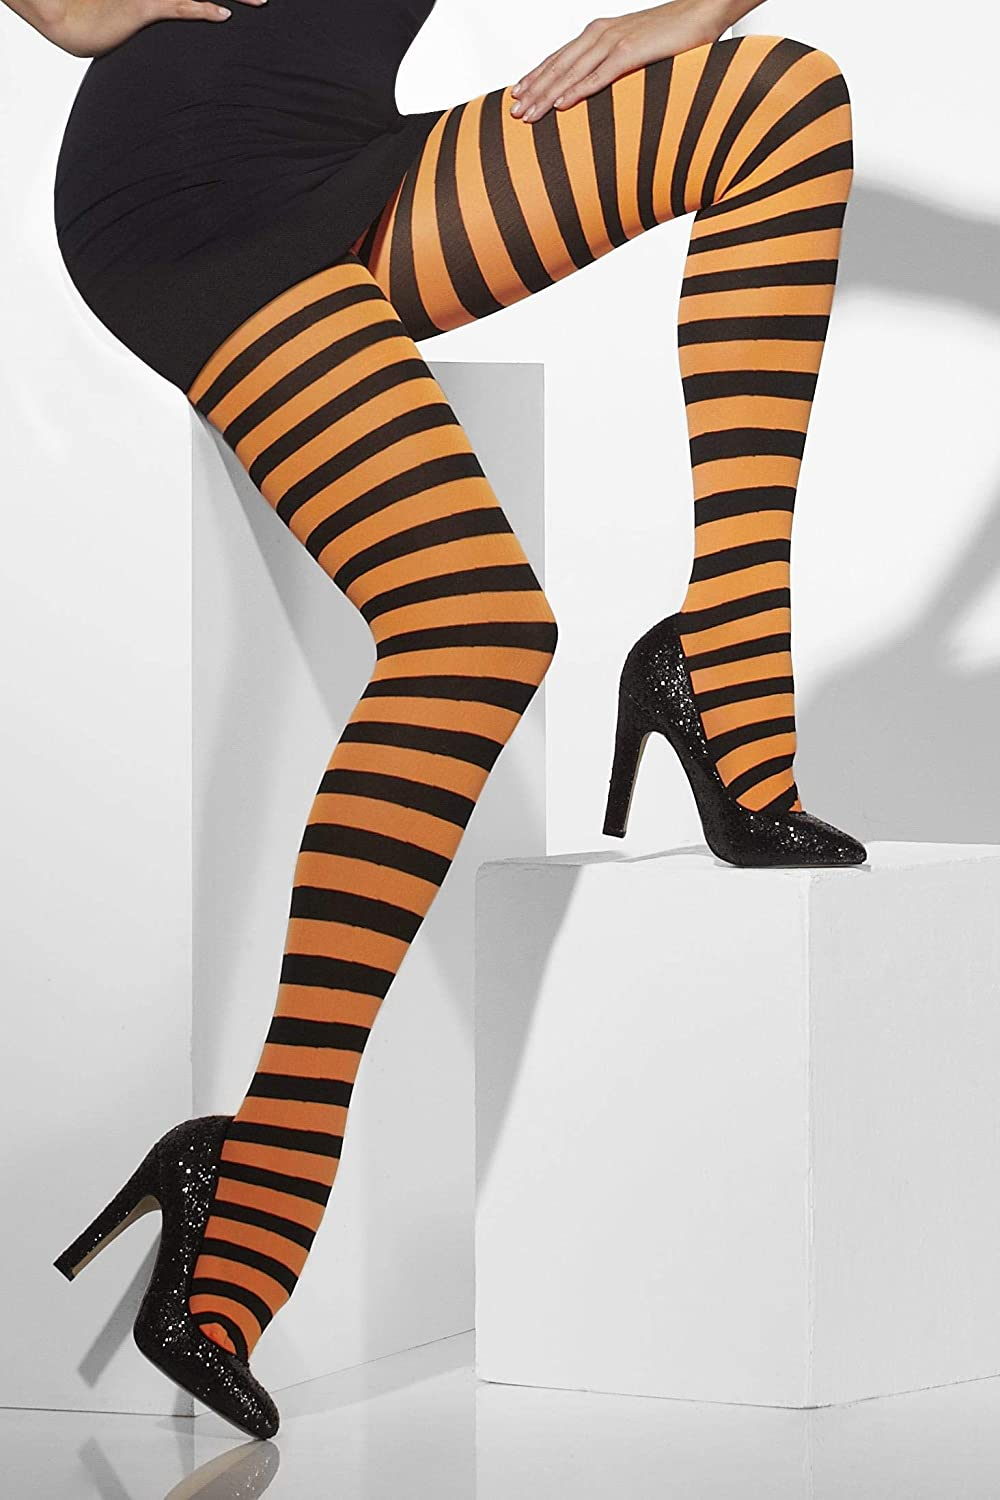 Smiffy's Opaque Tights Fever Orange and White One Size 5020570427163